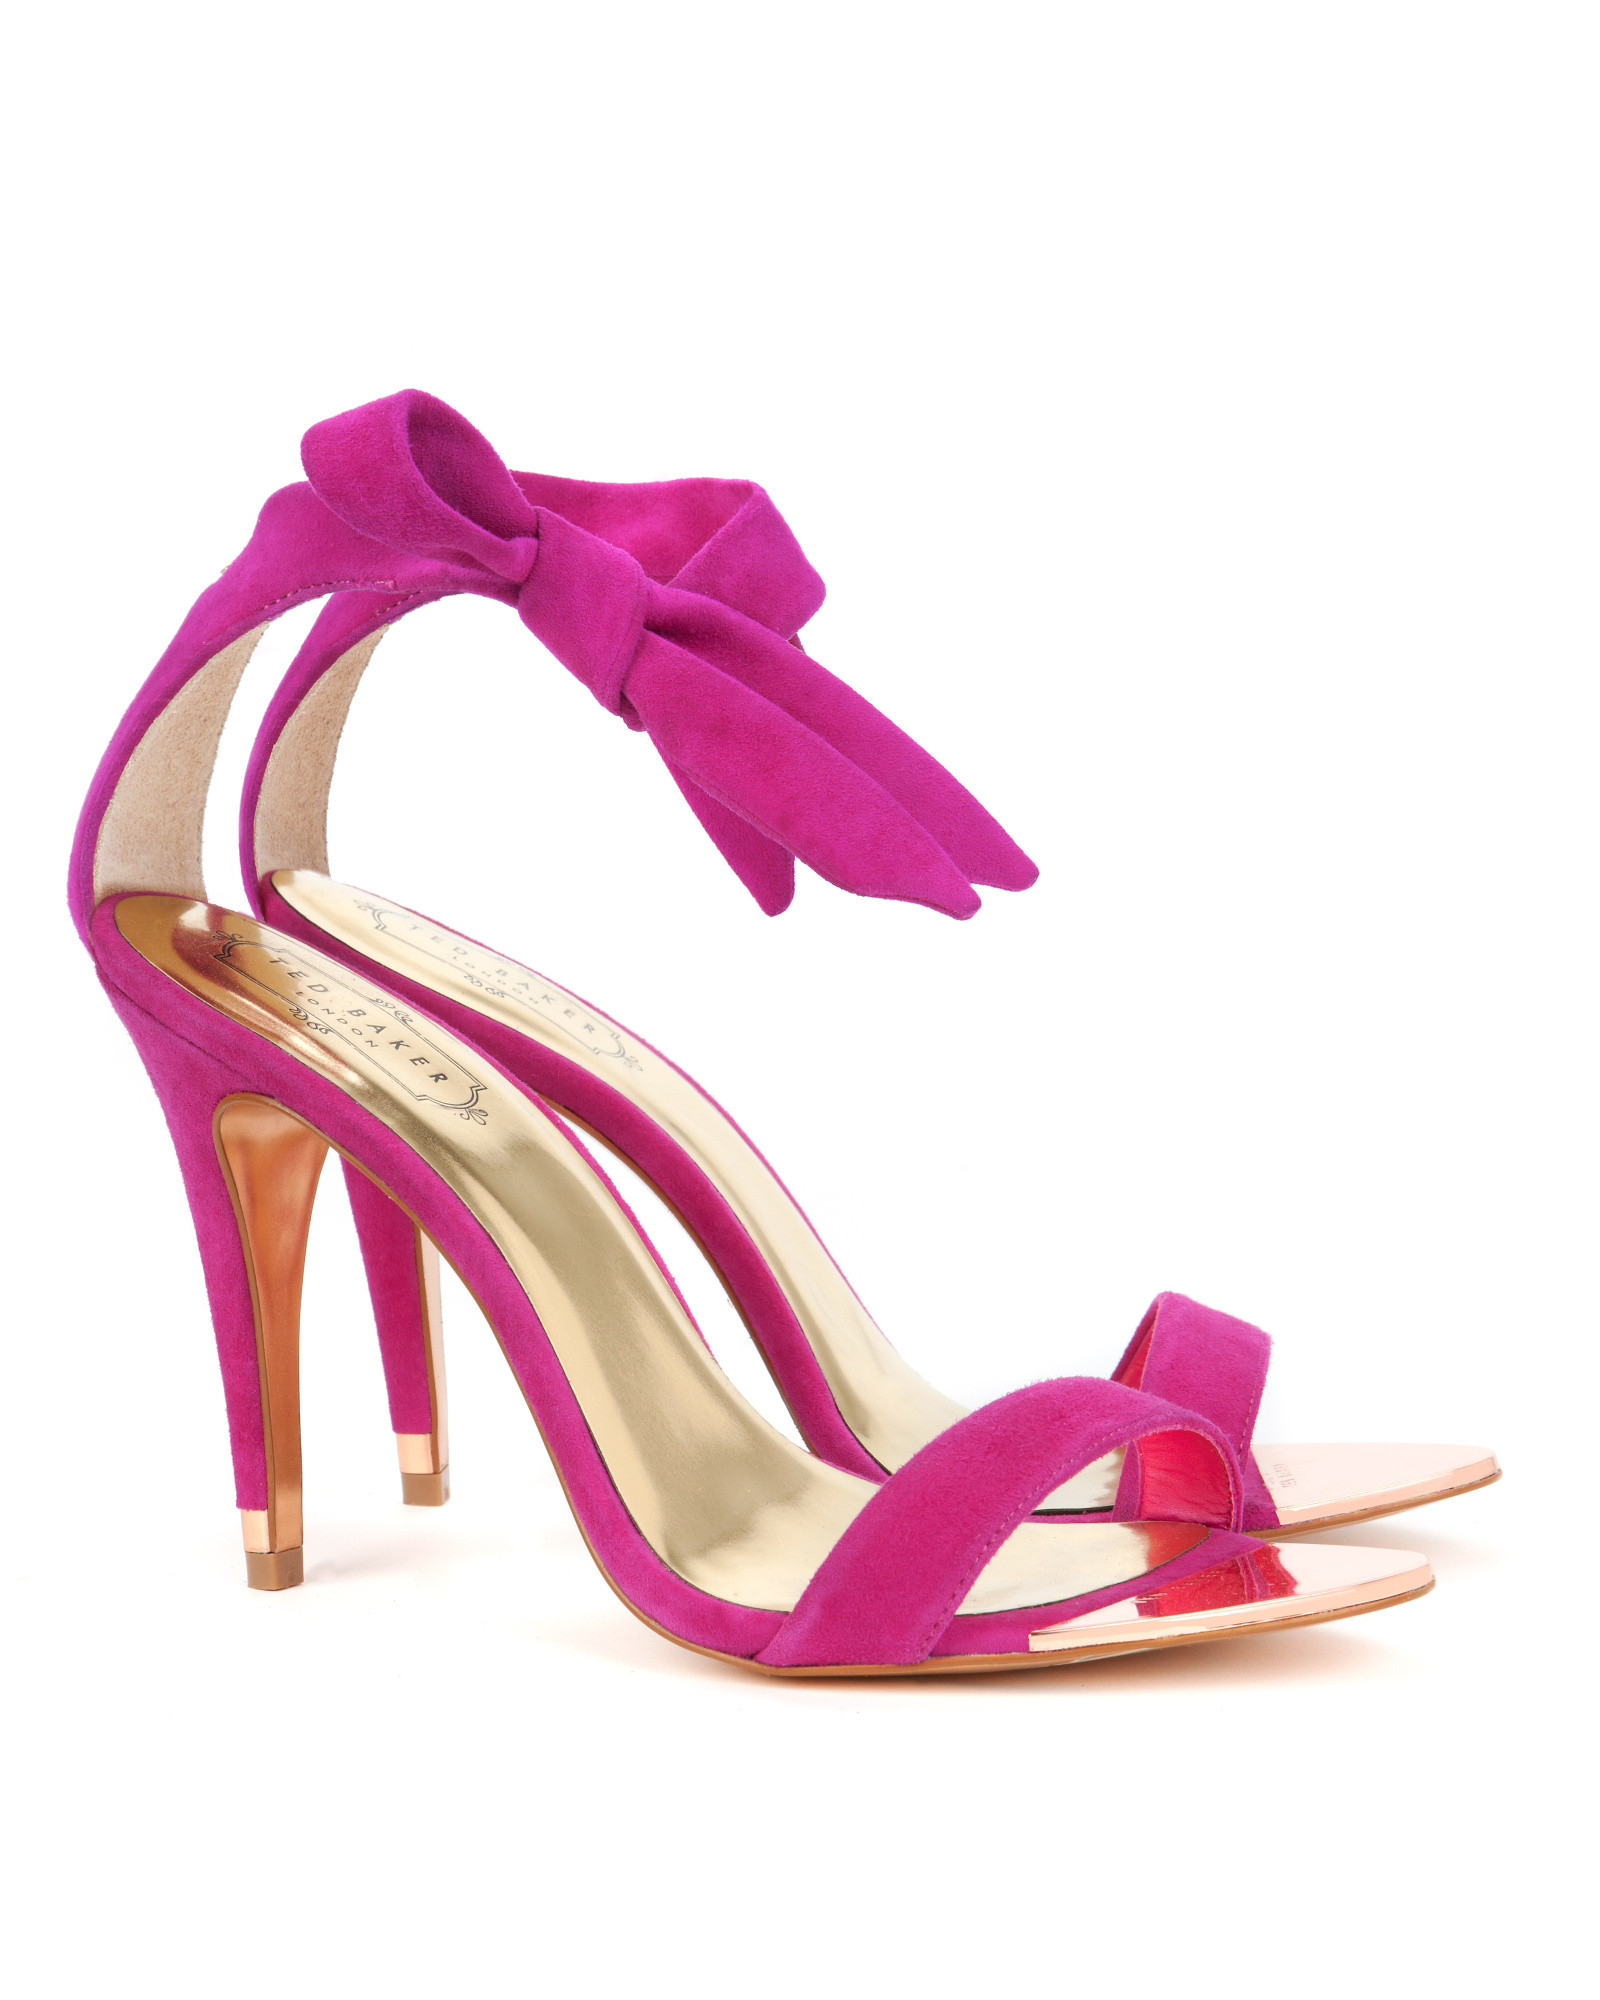 a01cc0ac572f Lyst - Ted Baker Ankle Tie Heels in Pink